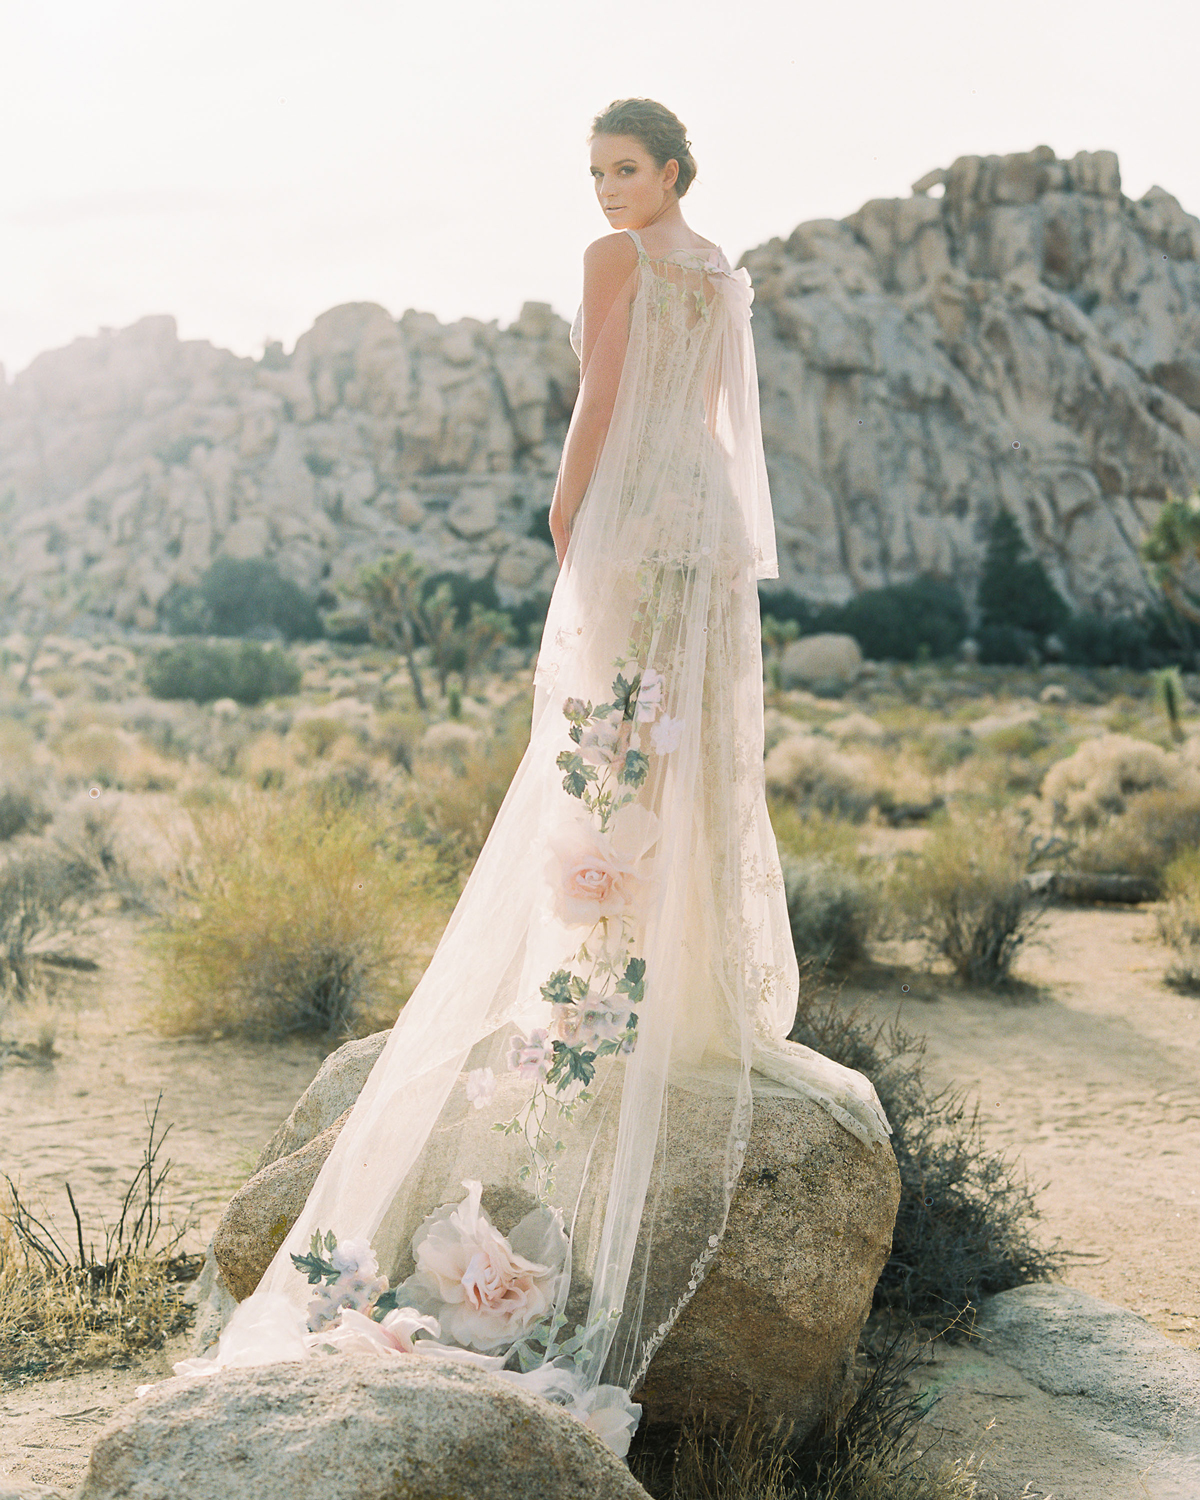 bride wearing long train lace wedding dress outside standing on rock with flowers